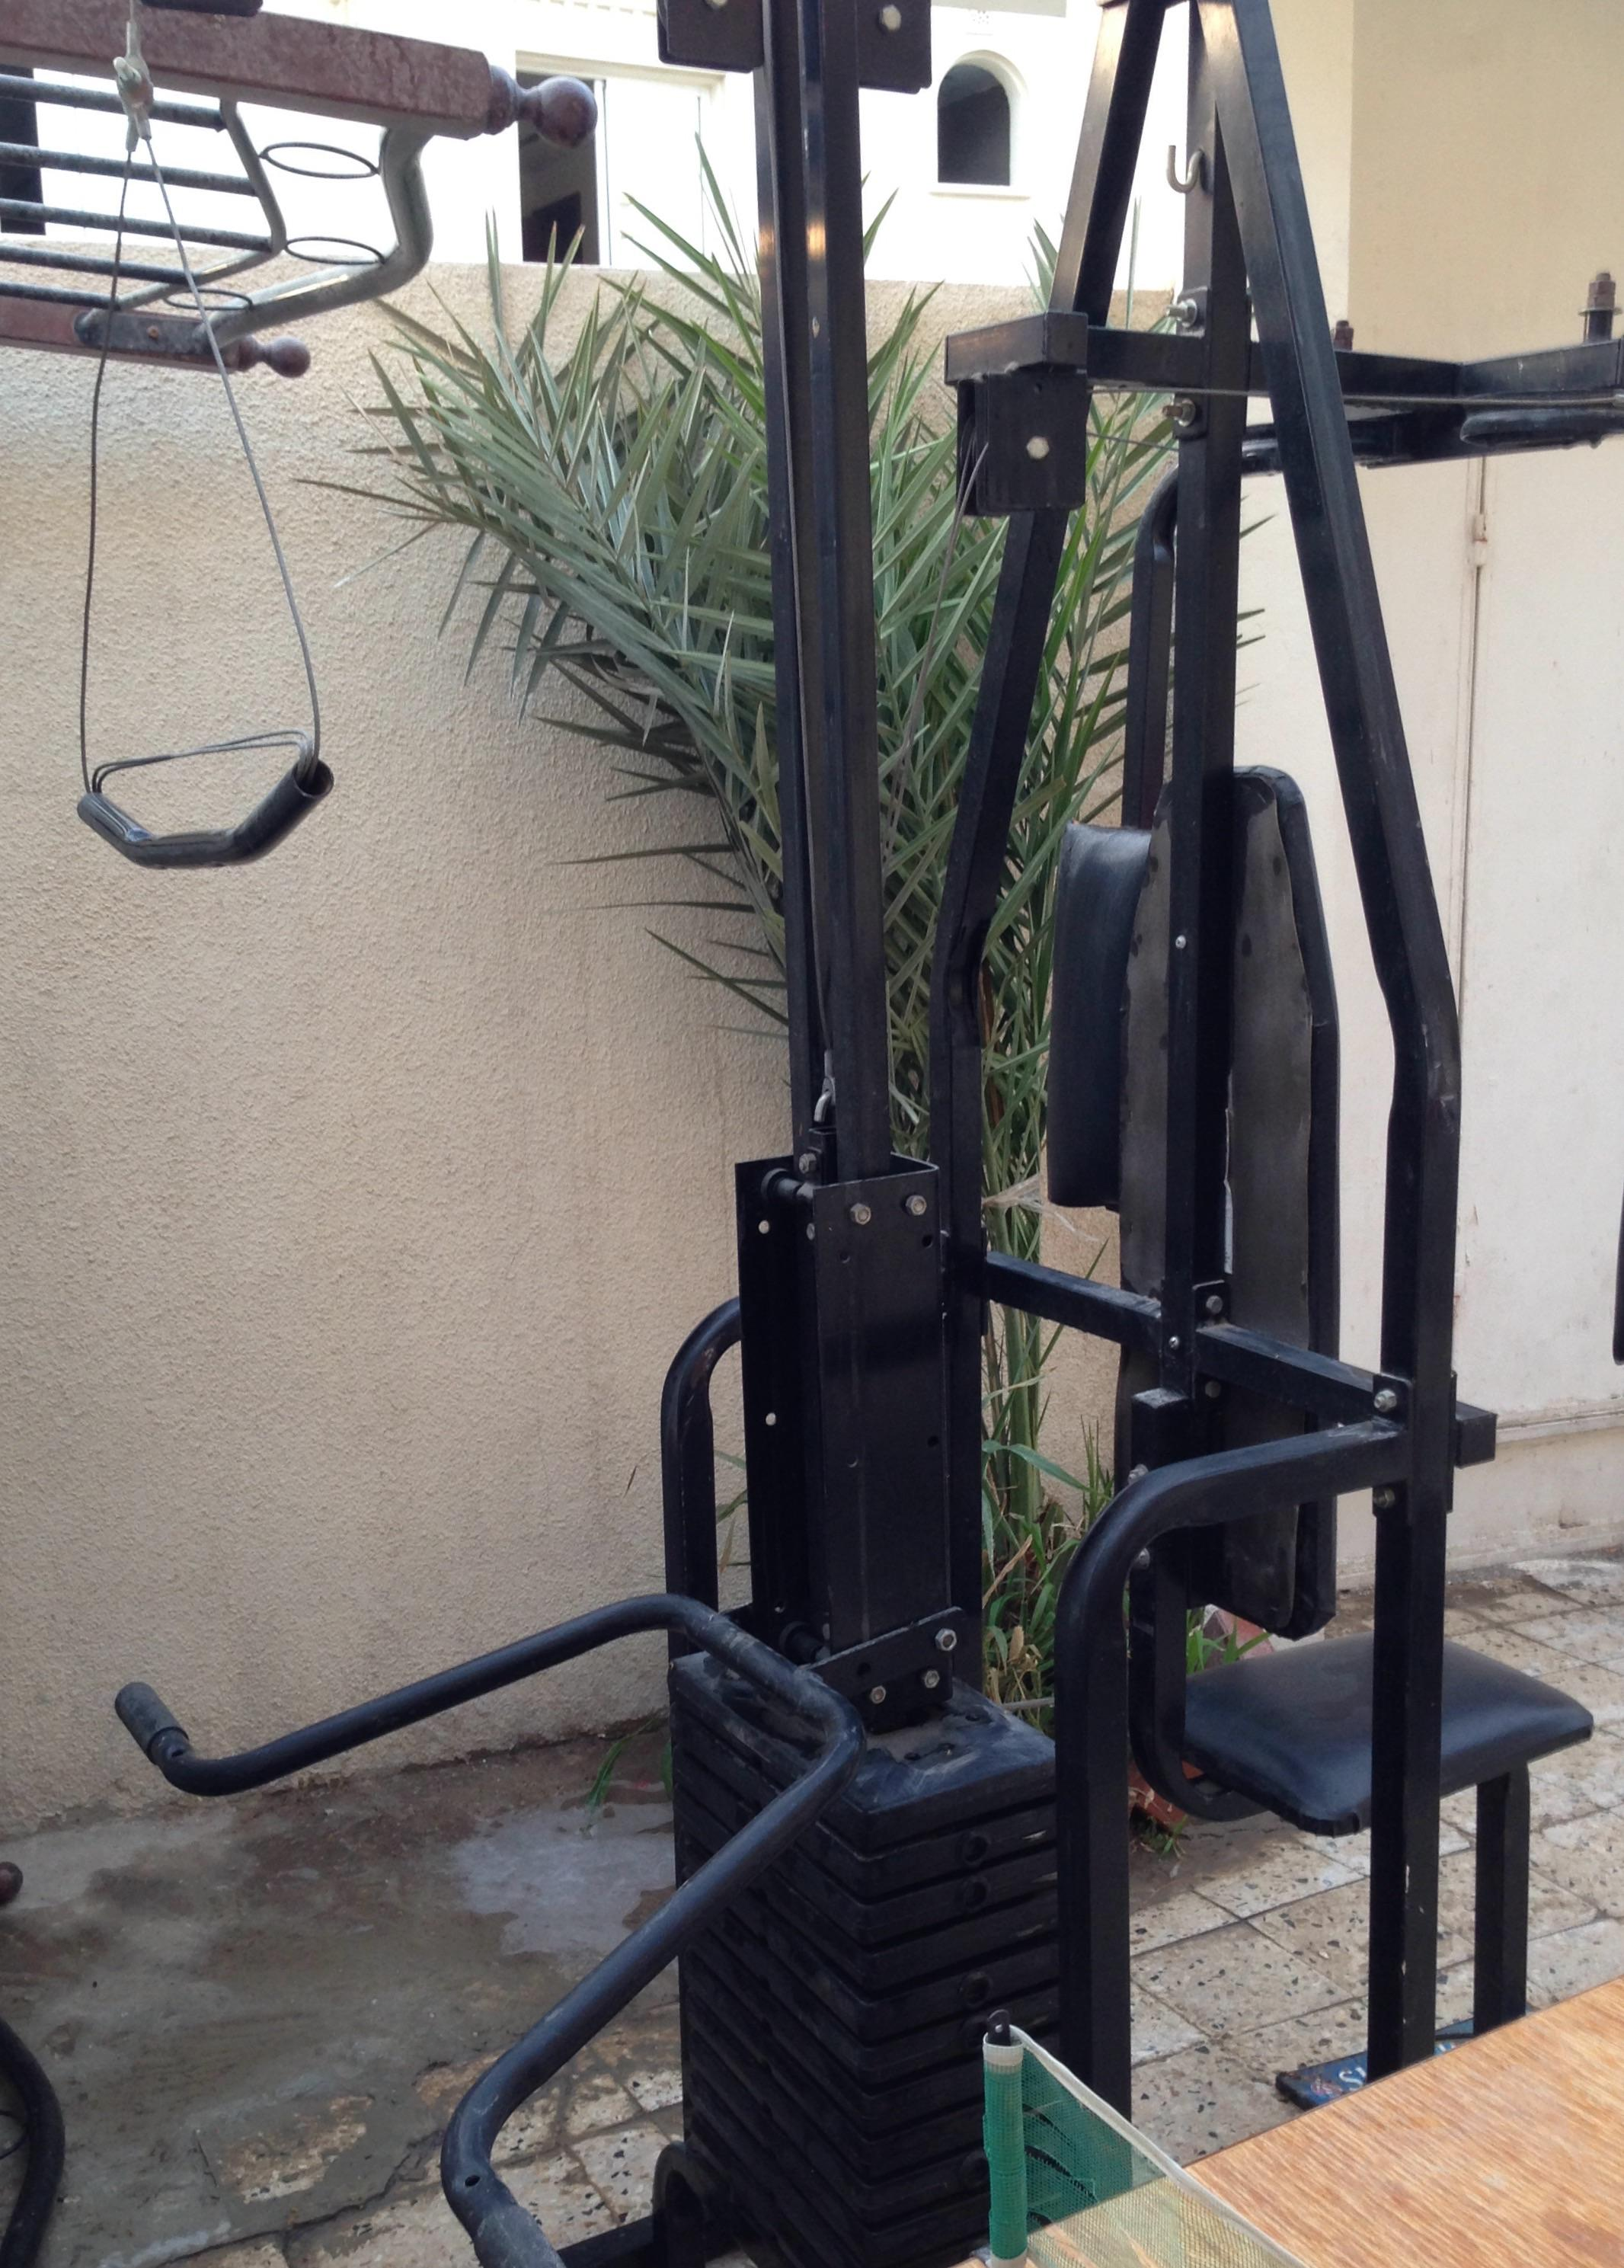 Gym equipment for sale at home qatar living